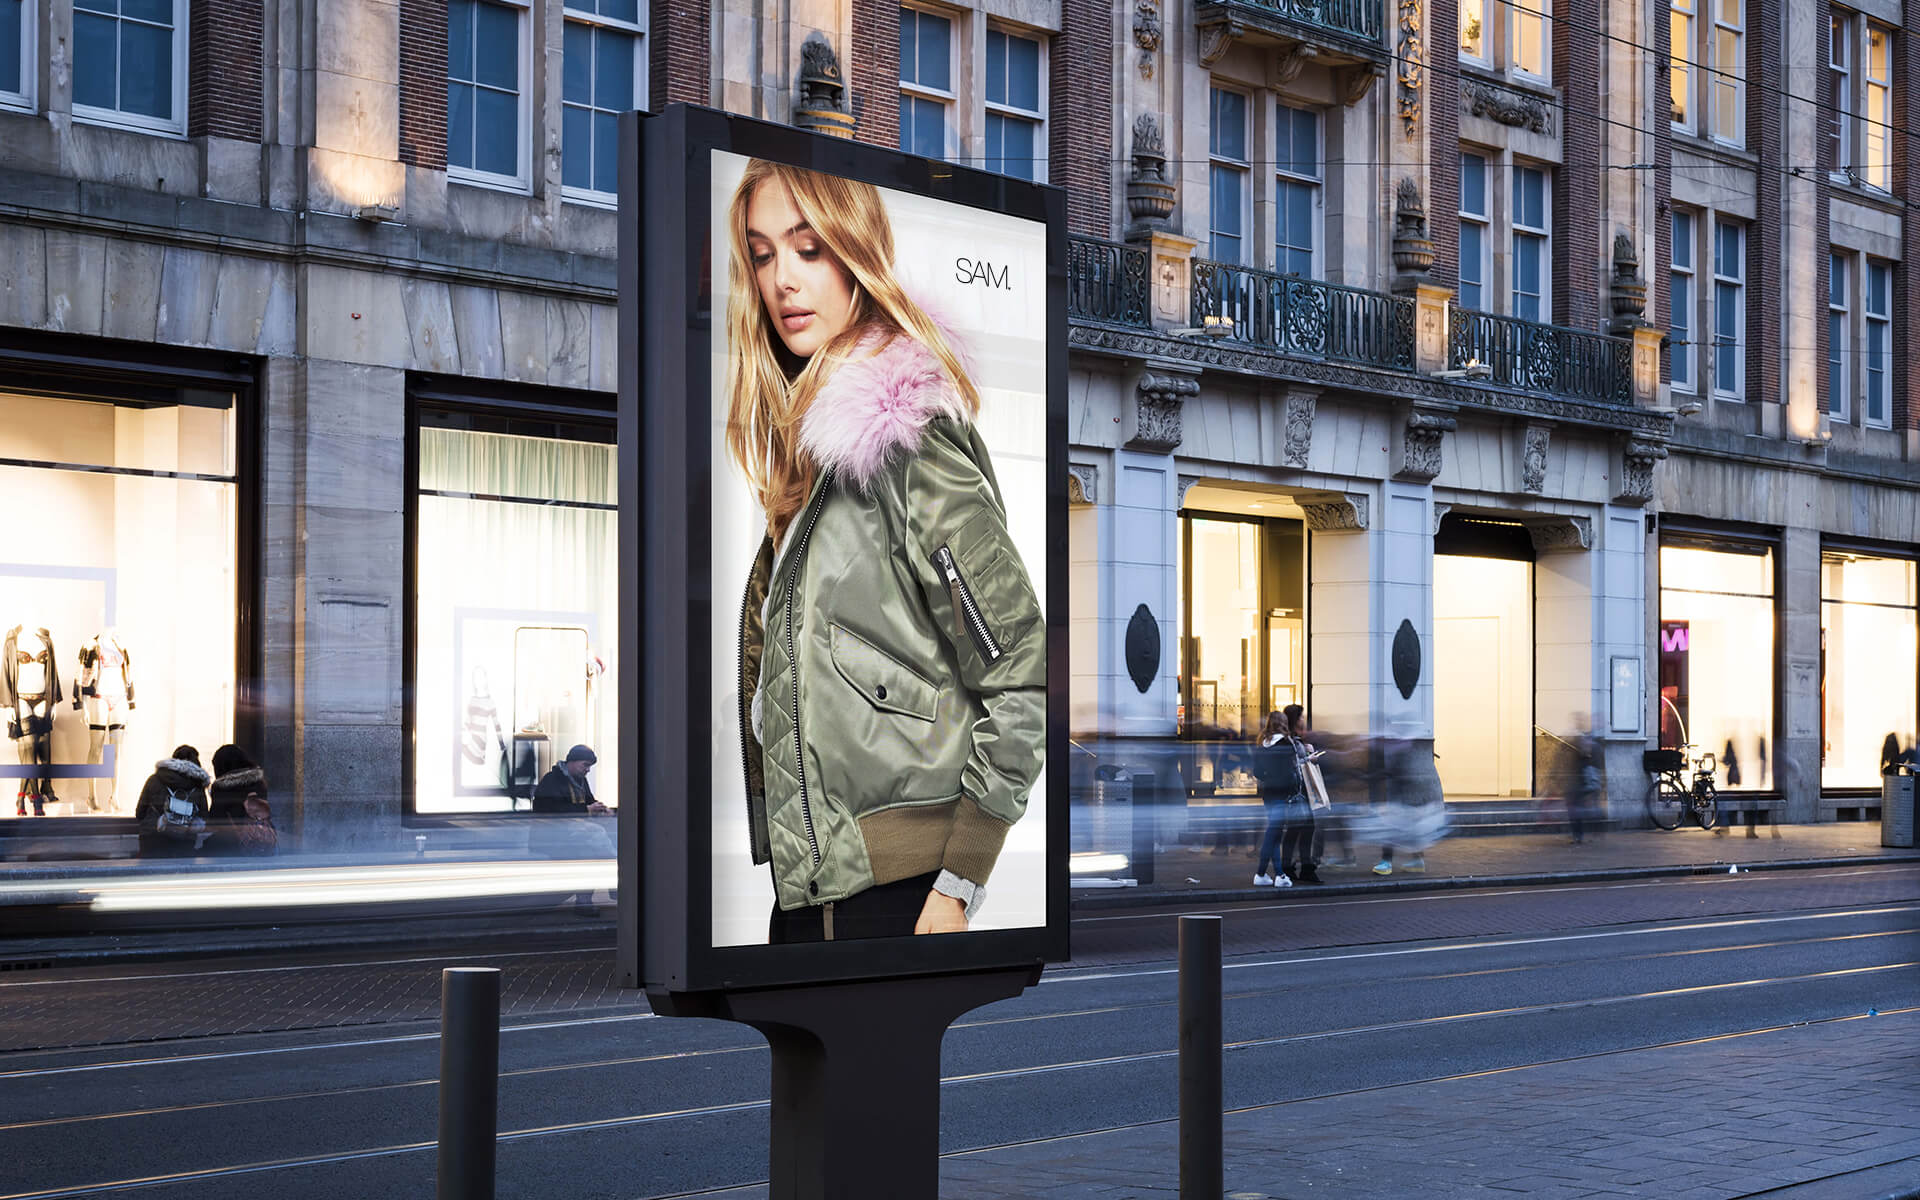 Fashion Digital Marketing Agency Outdoor Advertising for Luxury Fashion Branding